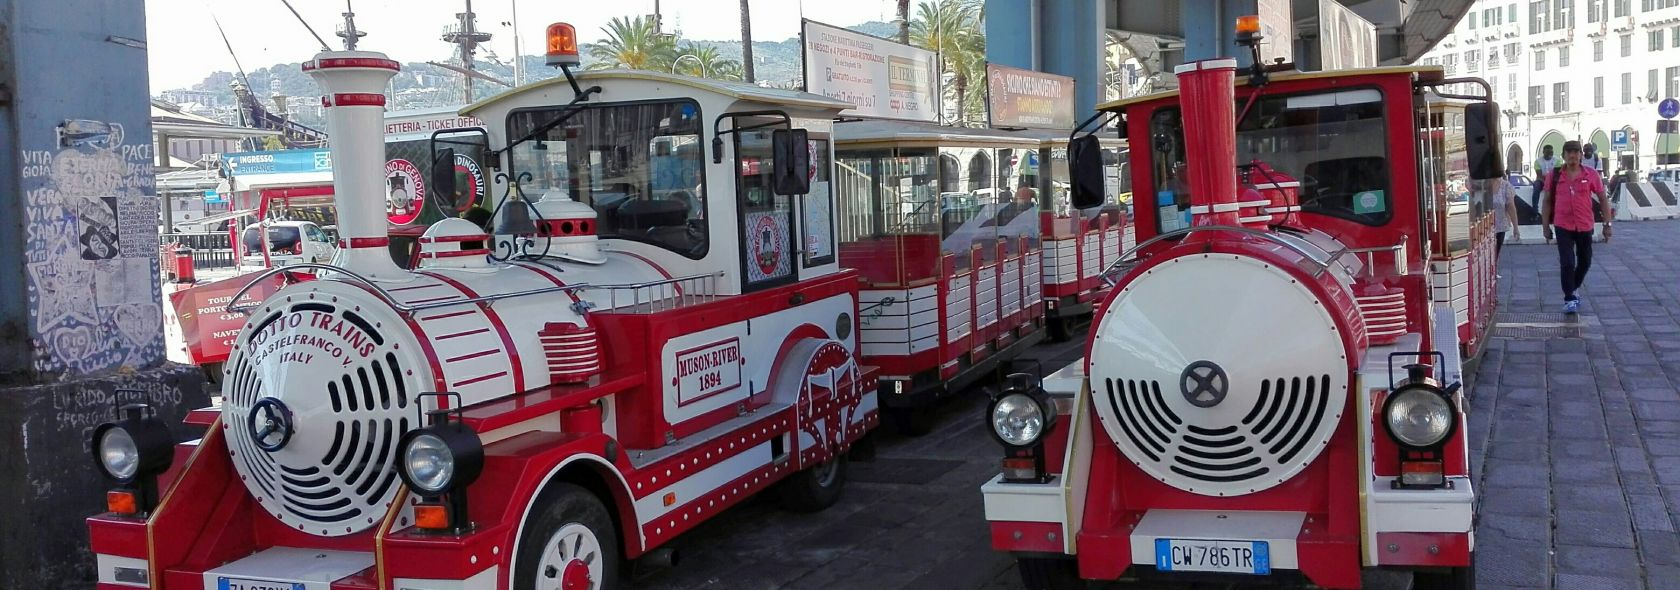 Genoa city tour aboard the Pippo train